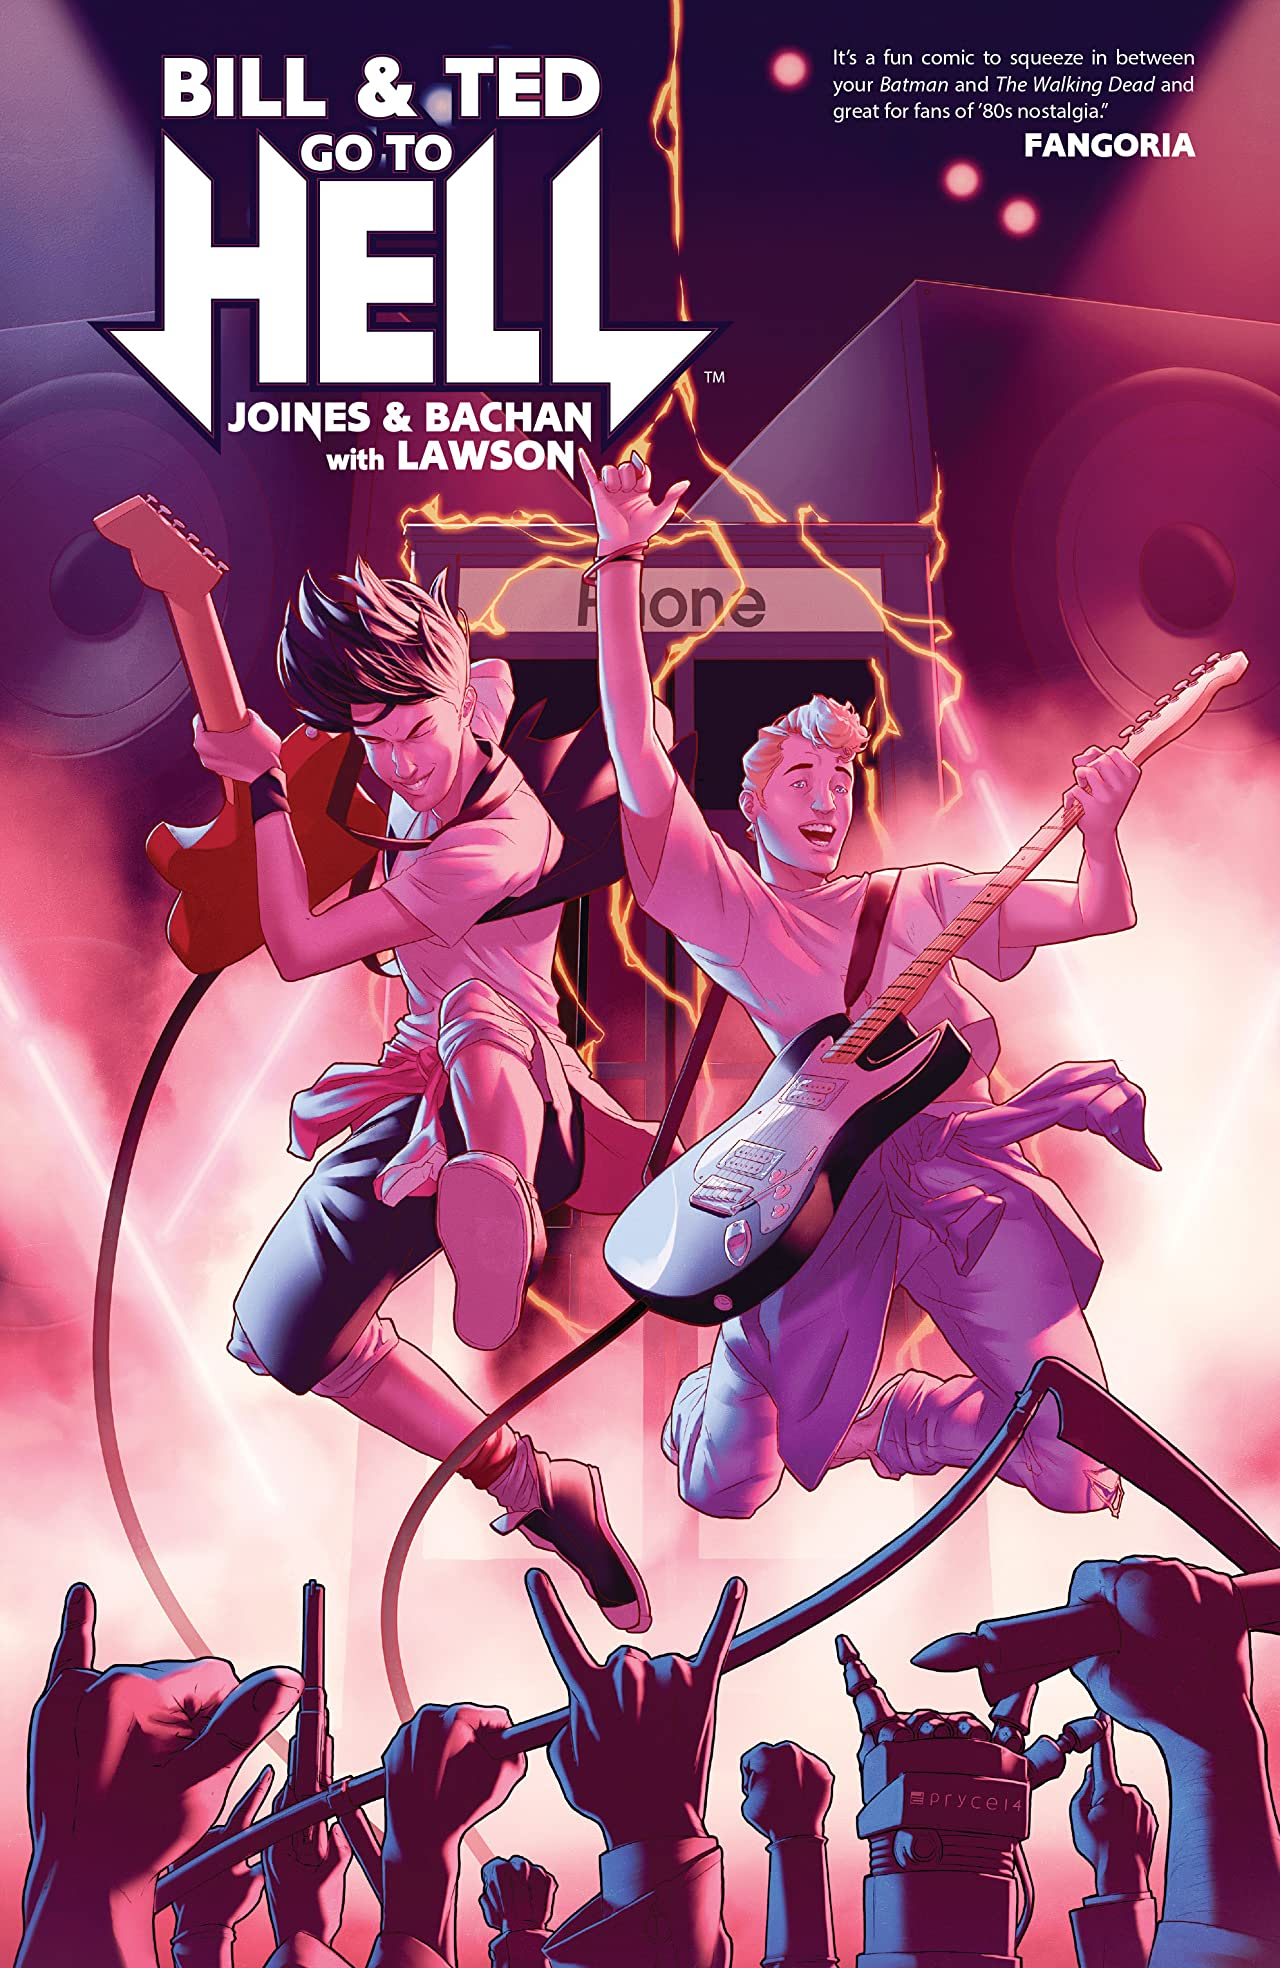 Bill & Ted Go To Hell Vol. 1